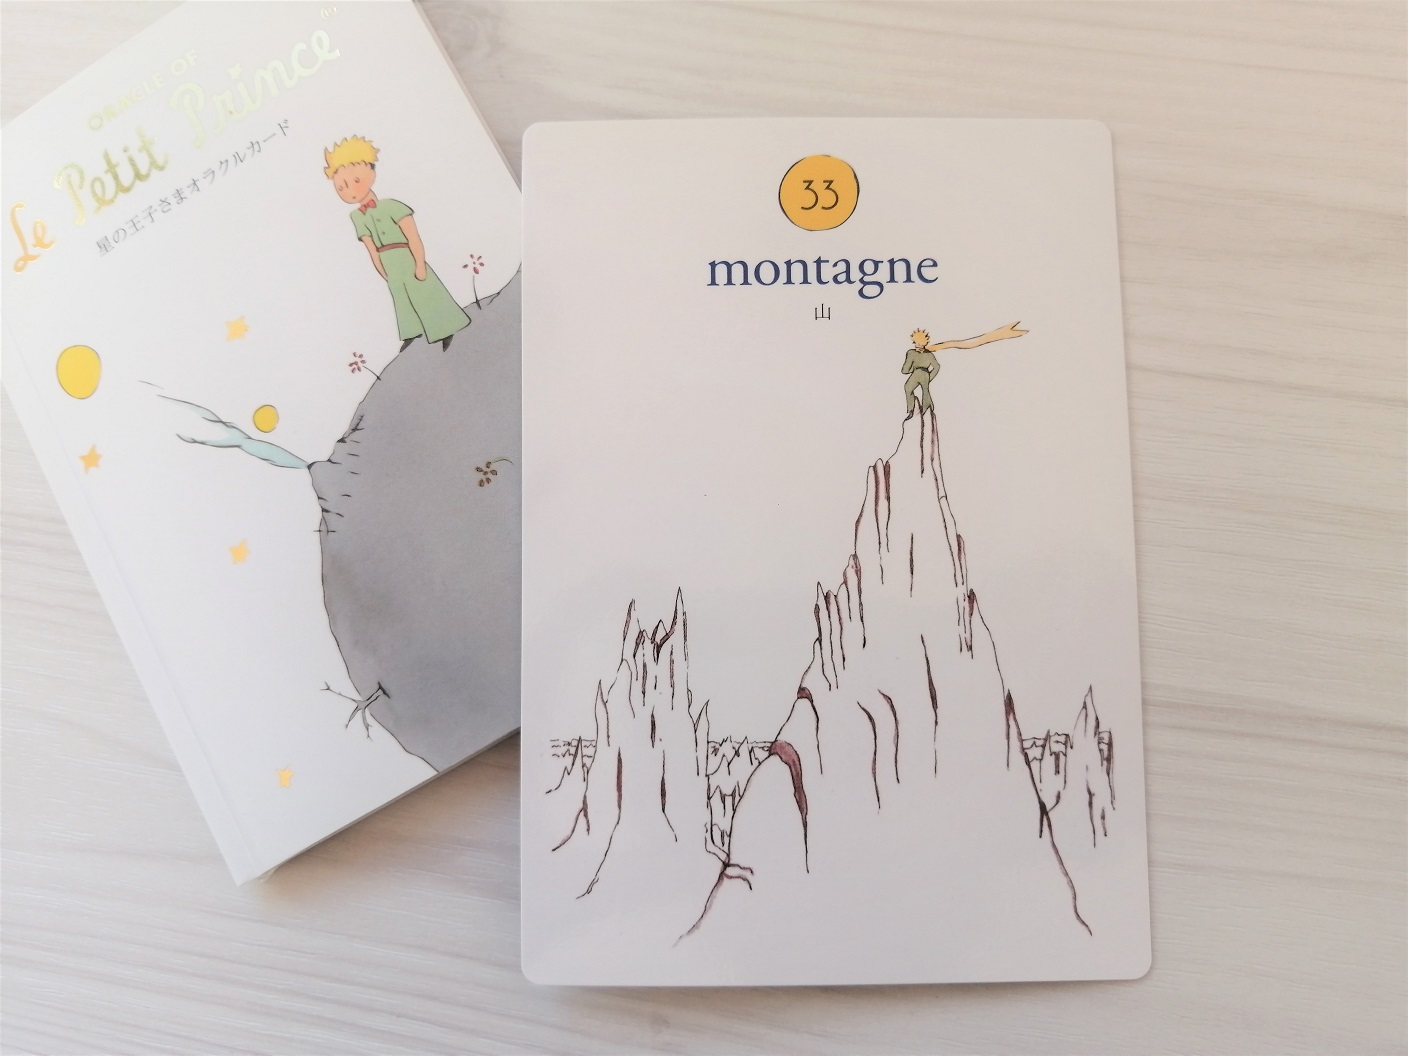 Today's prince card 『montagne 山』